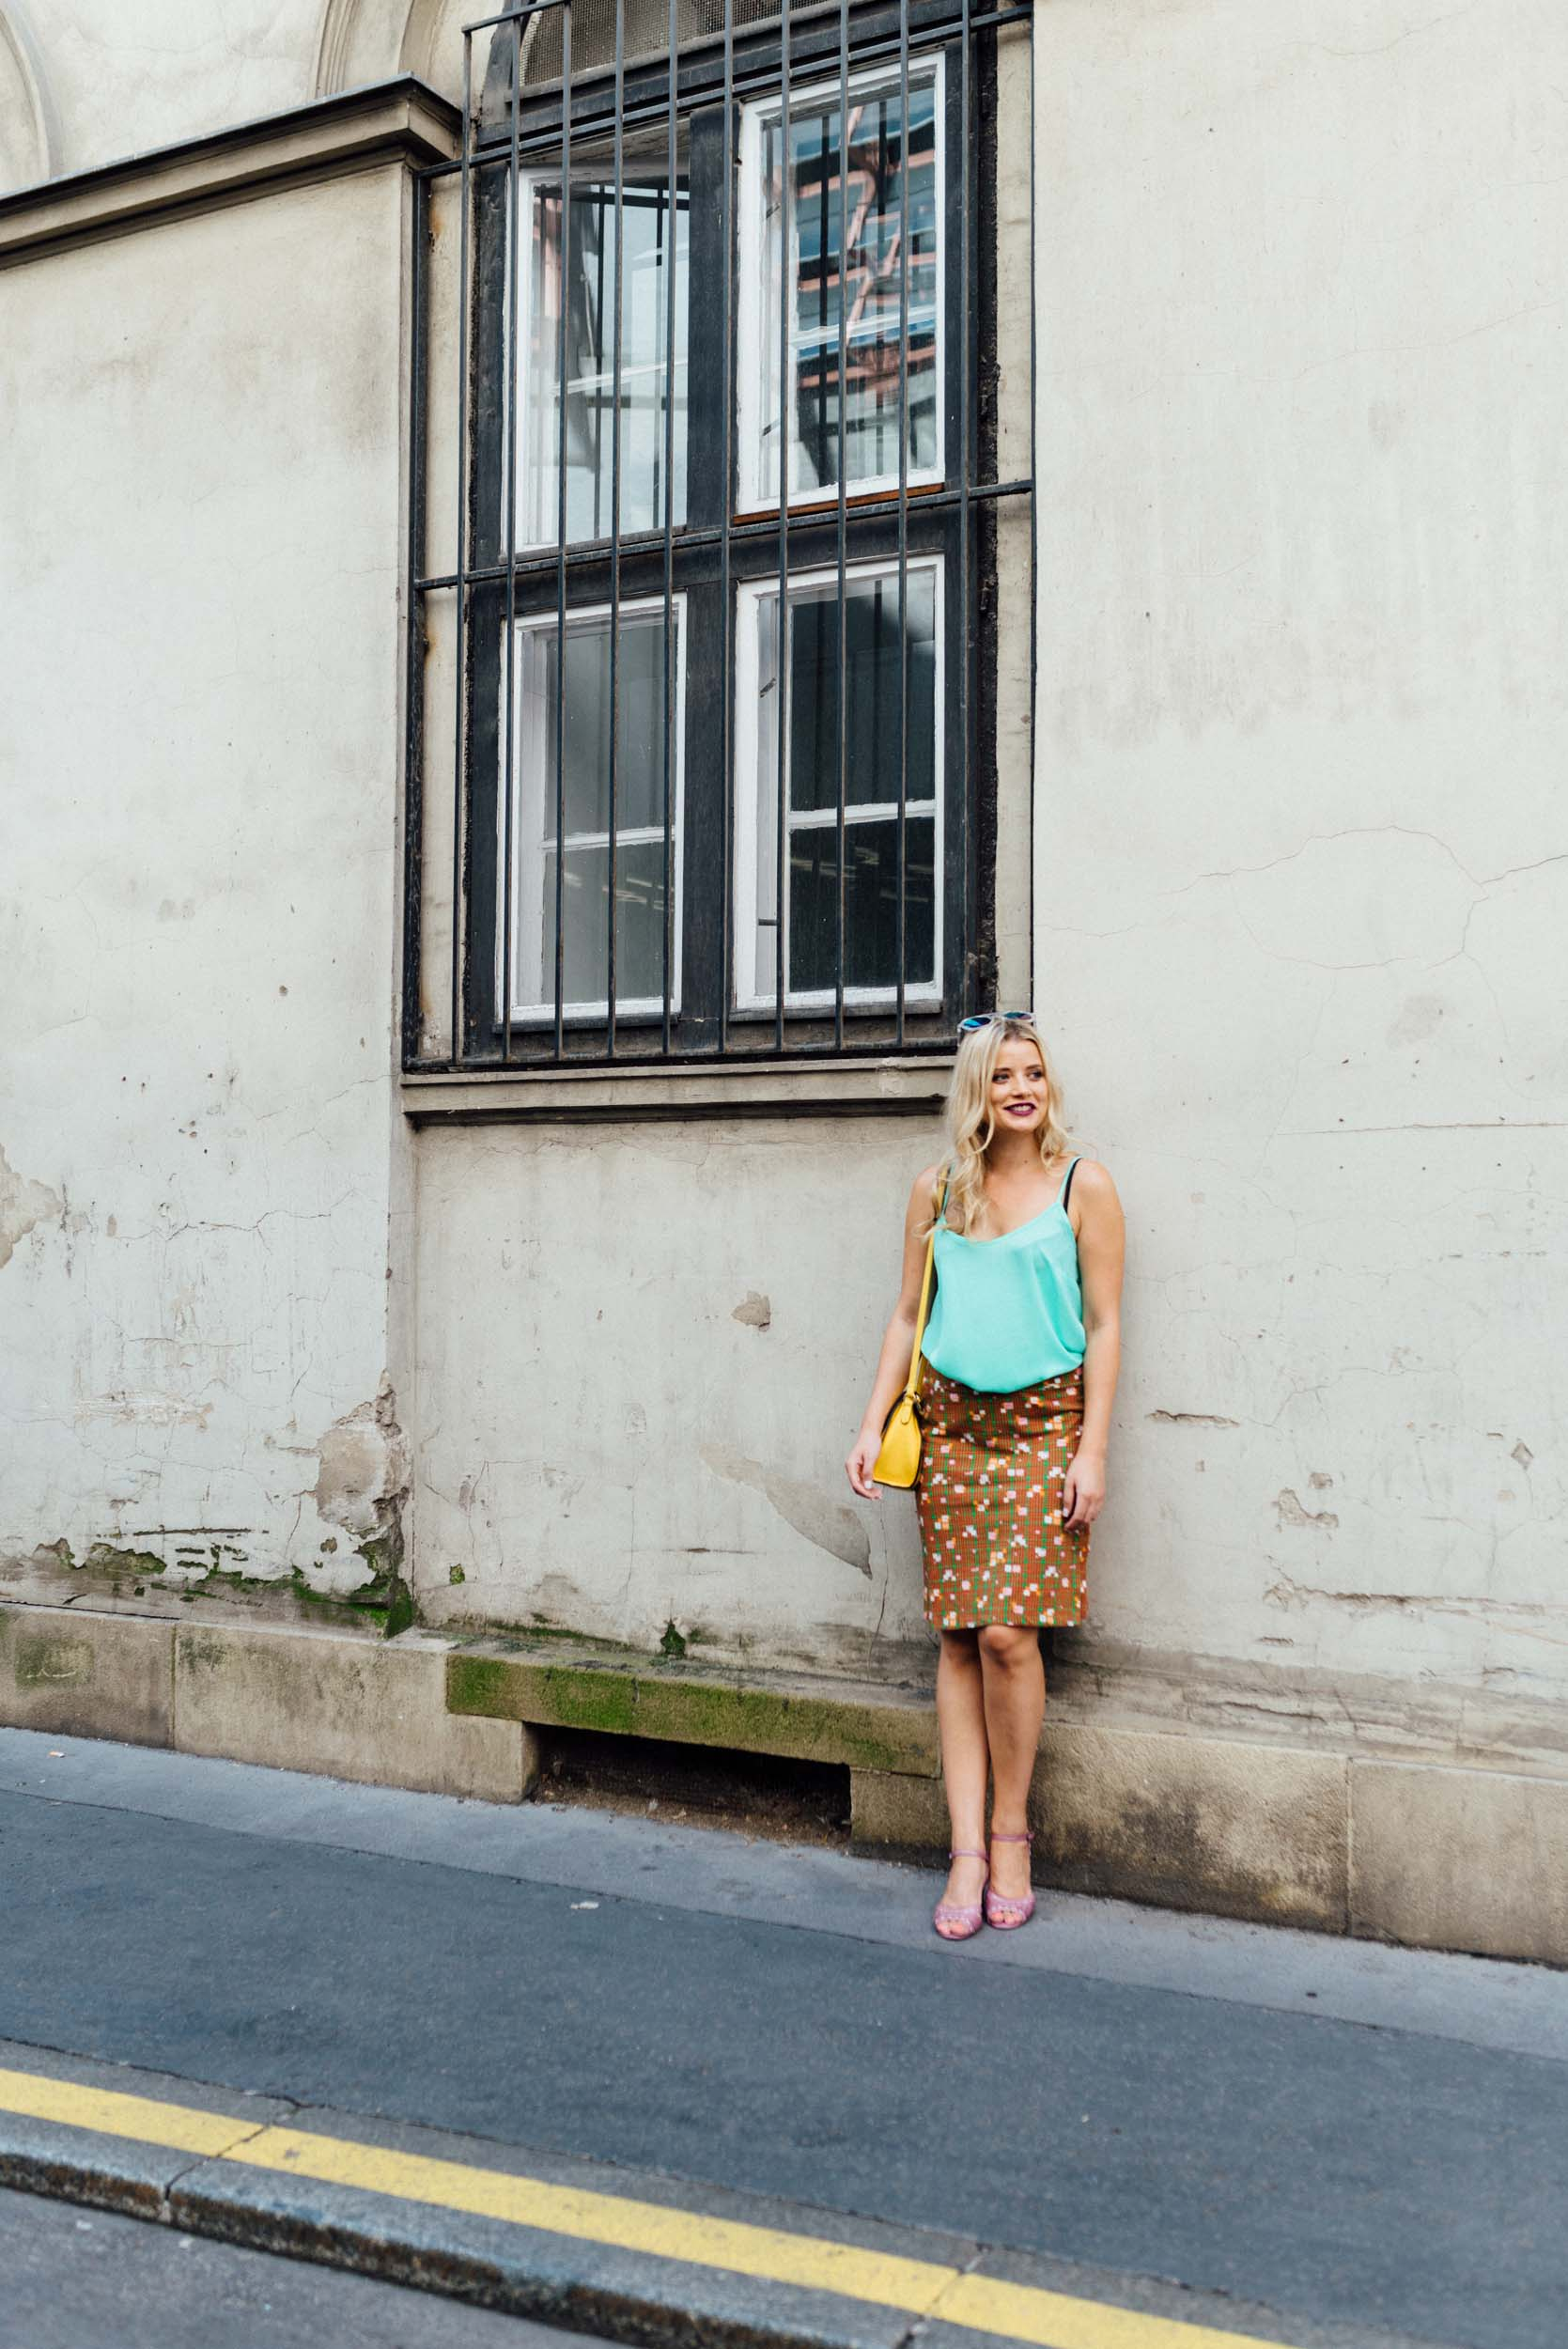 Check out this colorful styled shoot inspired by summer by Budapest photographer Dana J. Ardell